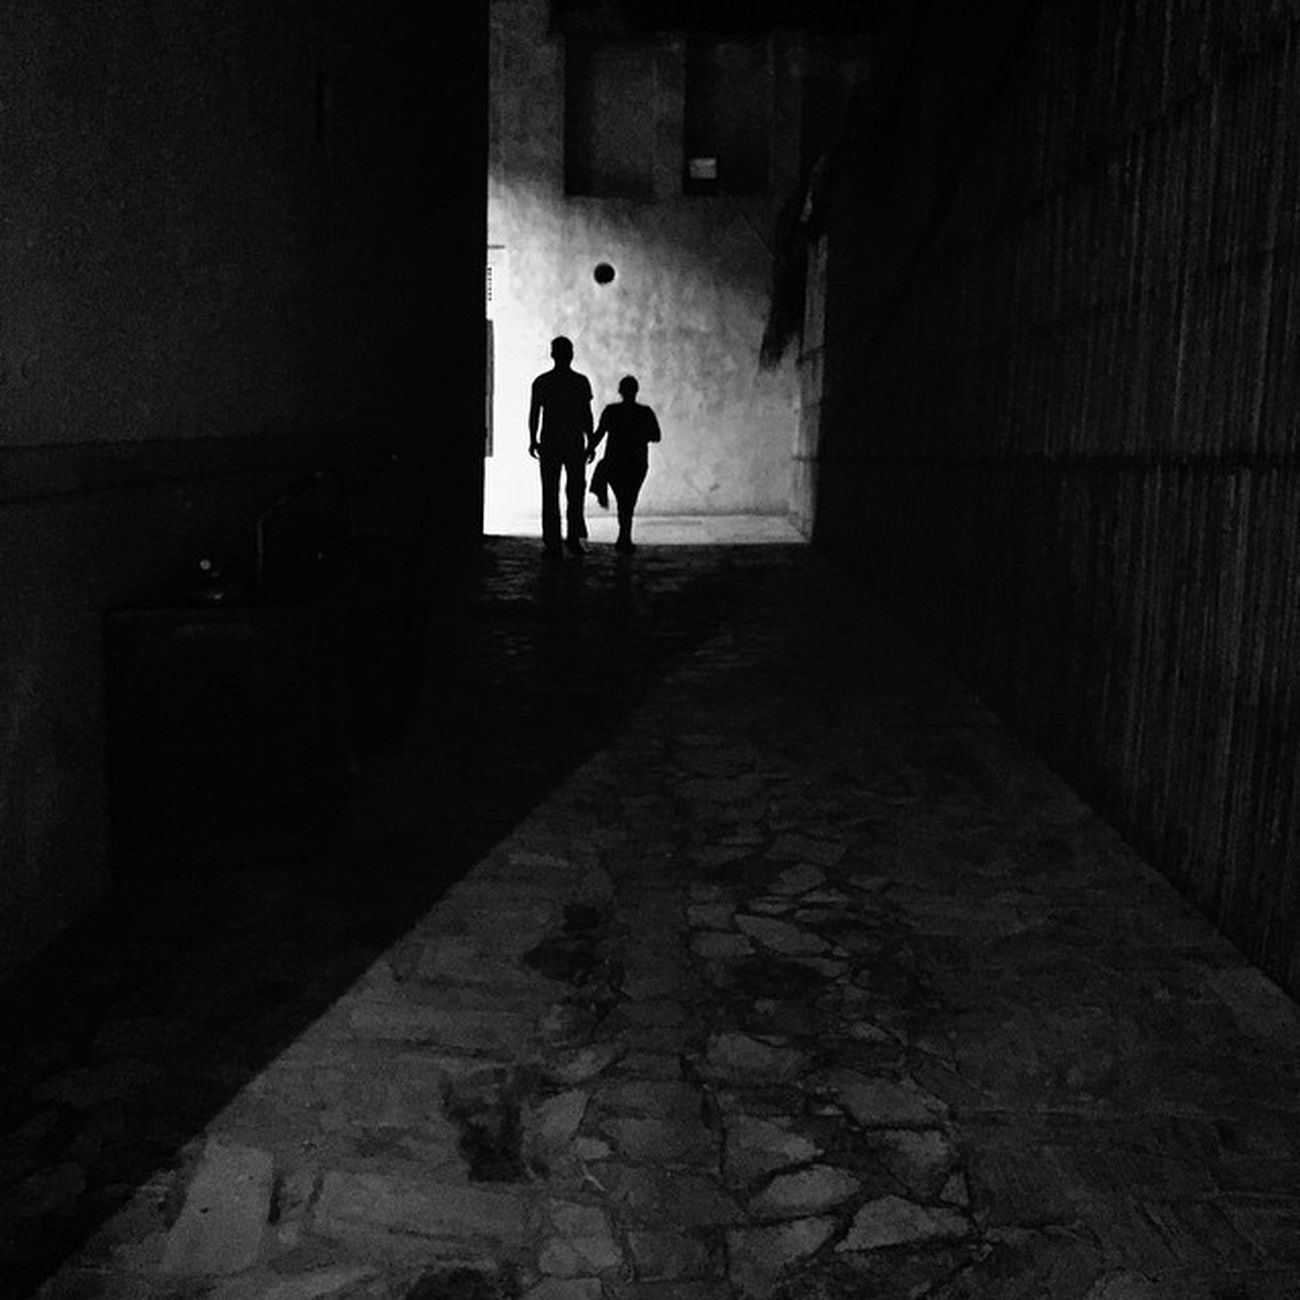 Dubaistreet Lightandshadowhunter Streetphotography Streetphotographyintheworld Iphonephotography ShotOniPhone6 Streetphotography_bw Mydubai Streetphotographer Streets_oftheworld StreetLife_Award StreetScenes Streetshot Dubaistreet Mydubai @hipaae Hipasnap Photoliga Photoliga_tc Monochrome Alley Silhouette C Couple Light Eyeem Philippines